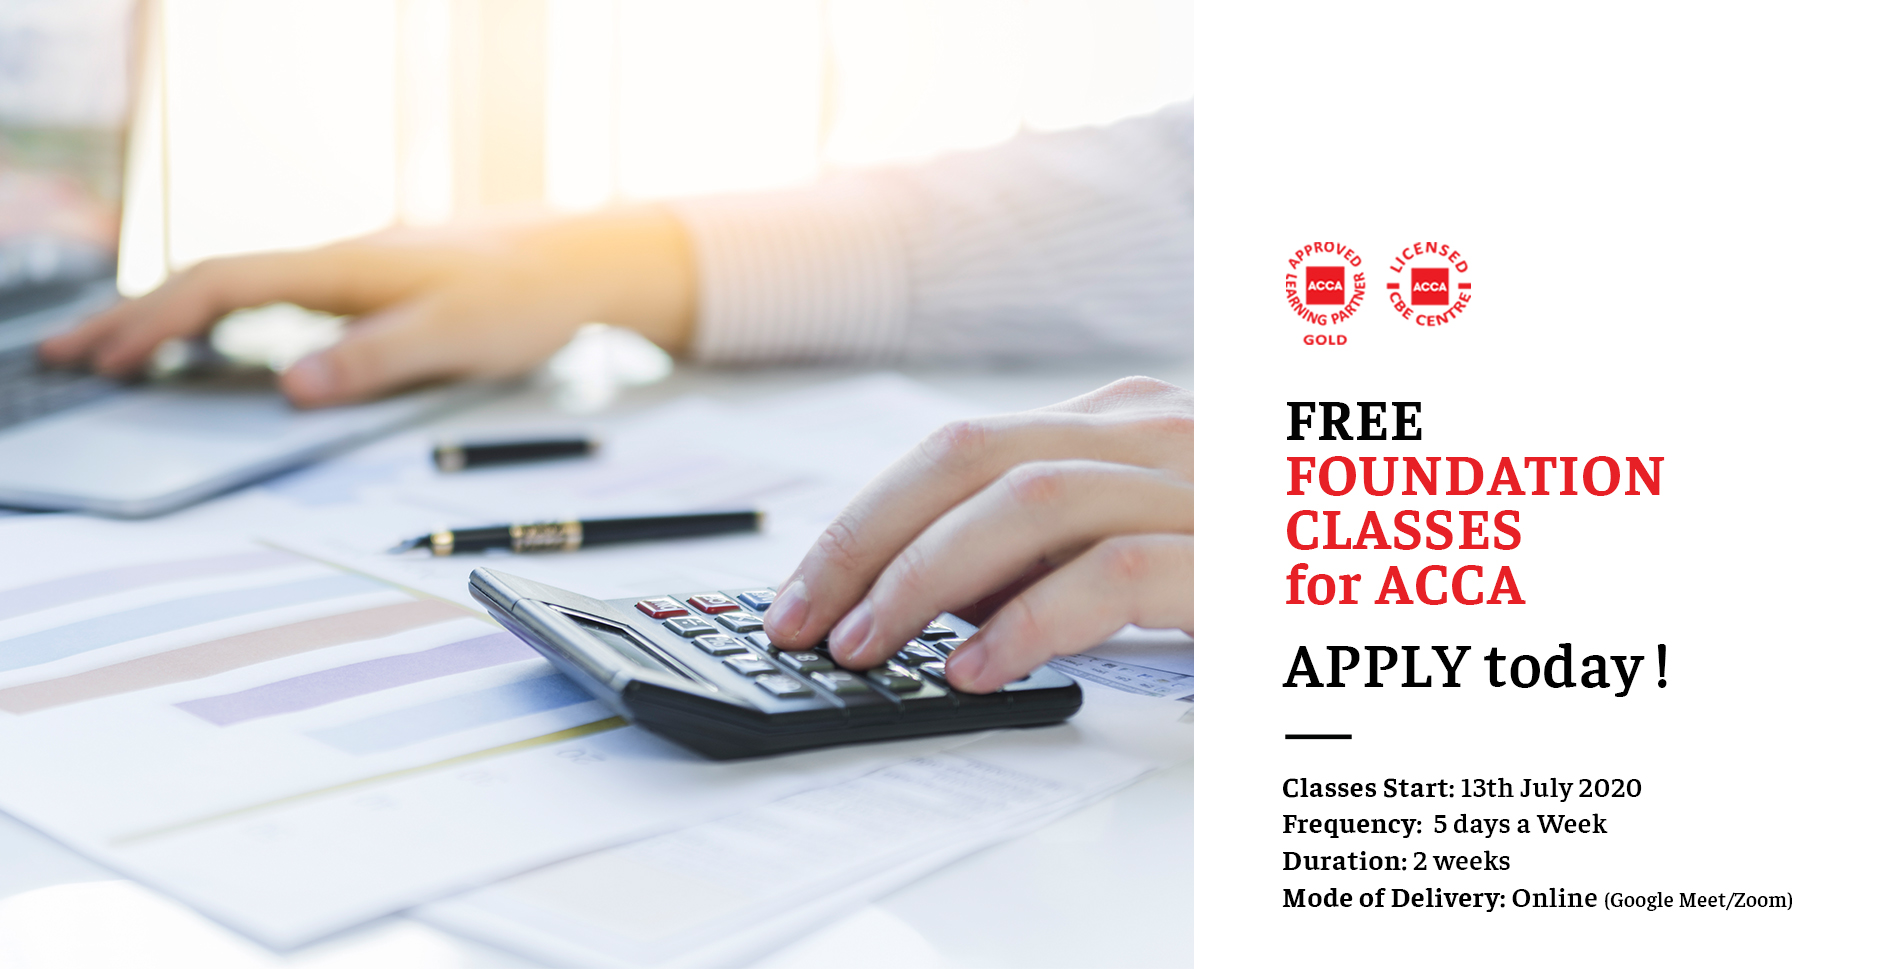 Foundation classes for ACCA